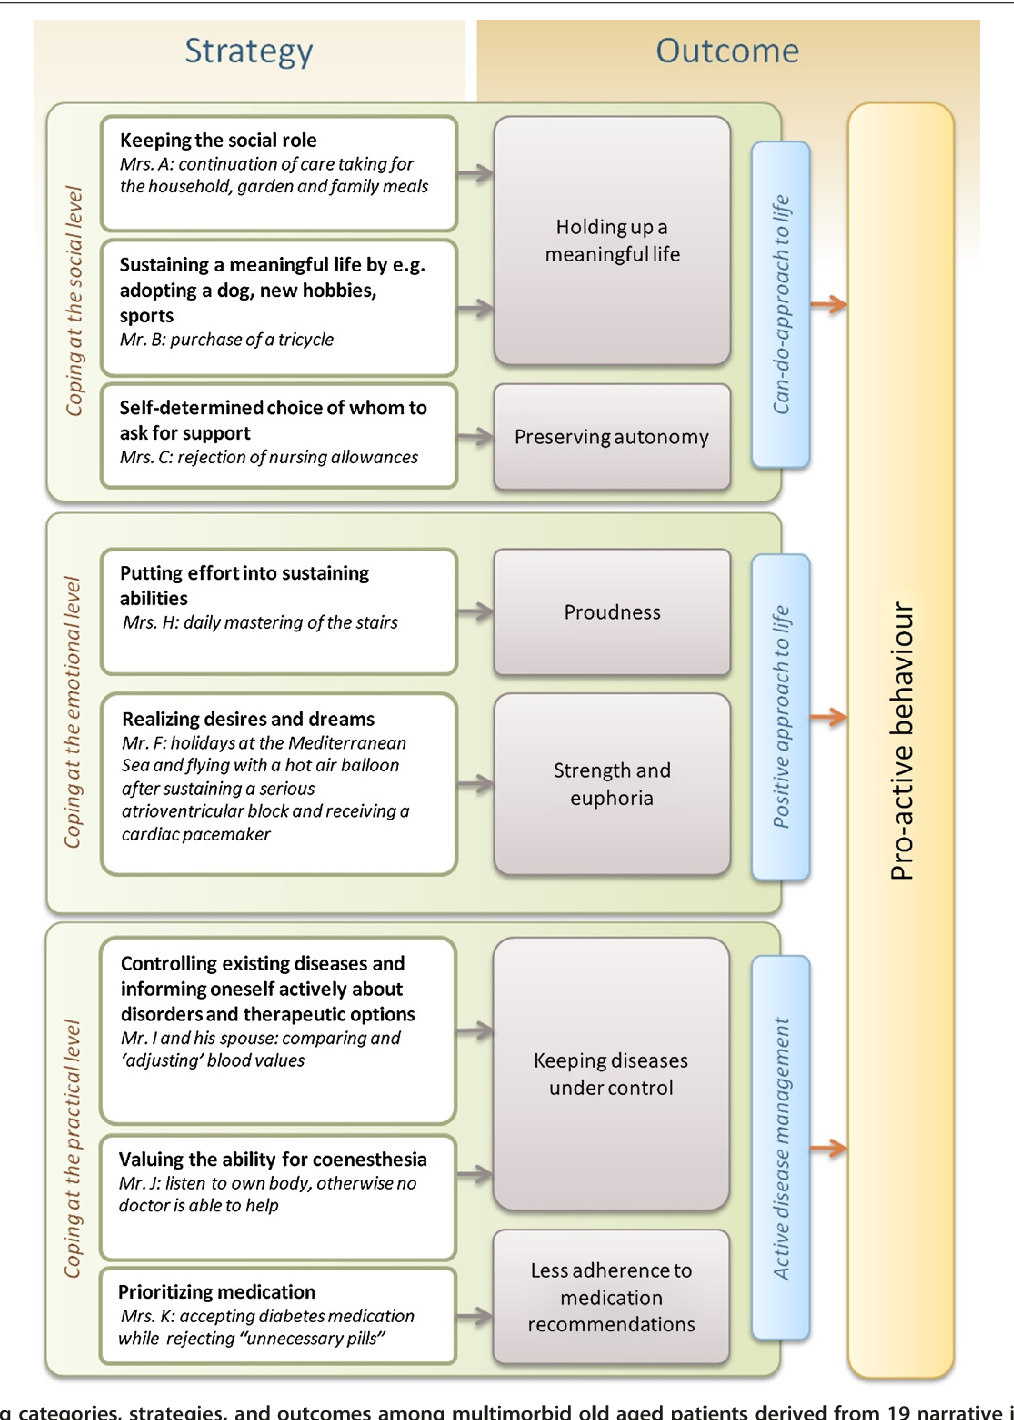 Figure 1 Coping categories, strategies, and outcomes among multimorbid old aged patients derived from 19 narrative in-depth interviews.